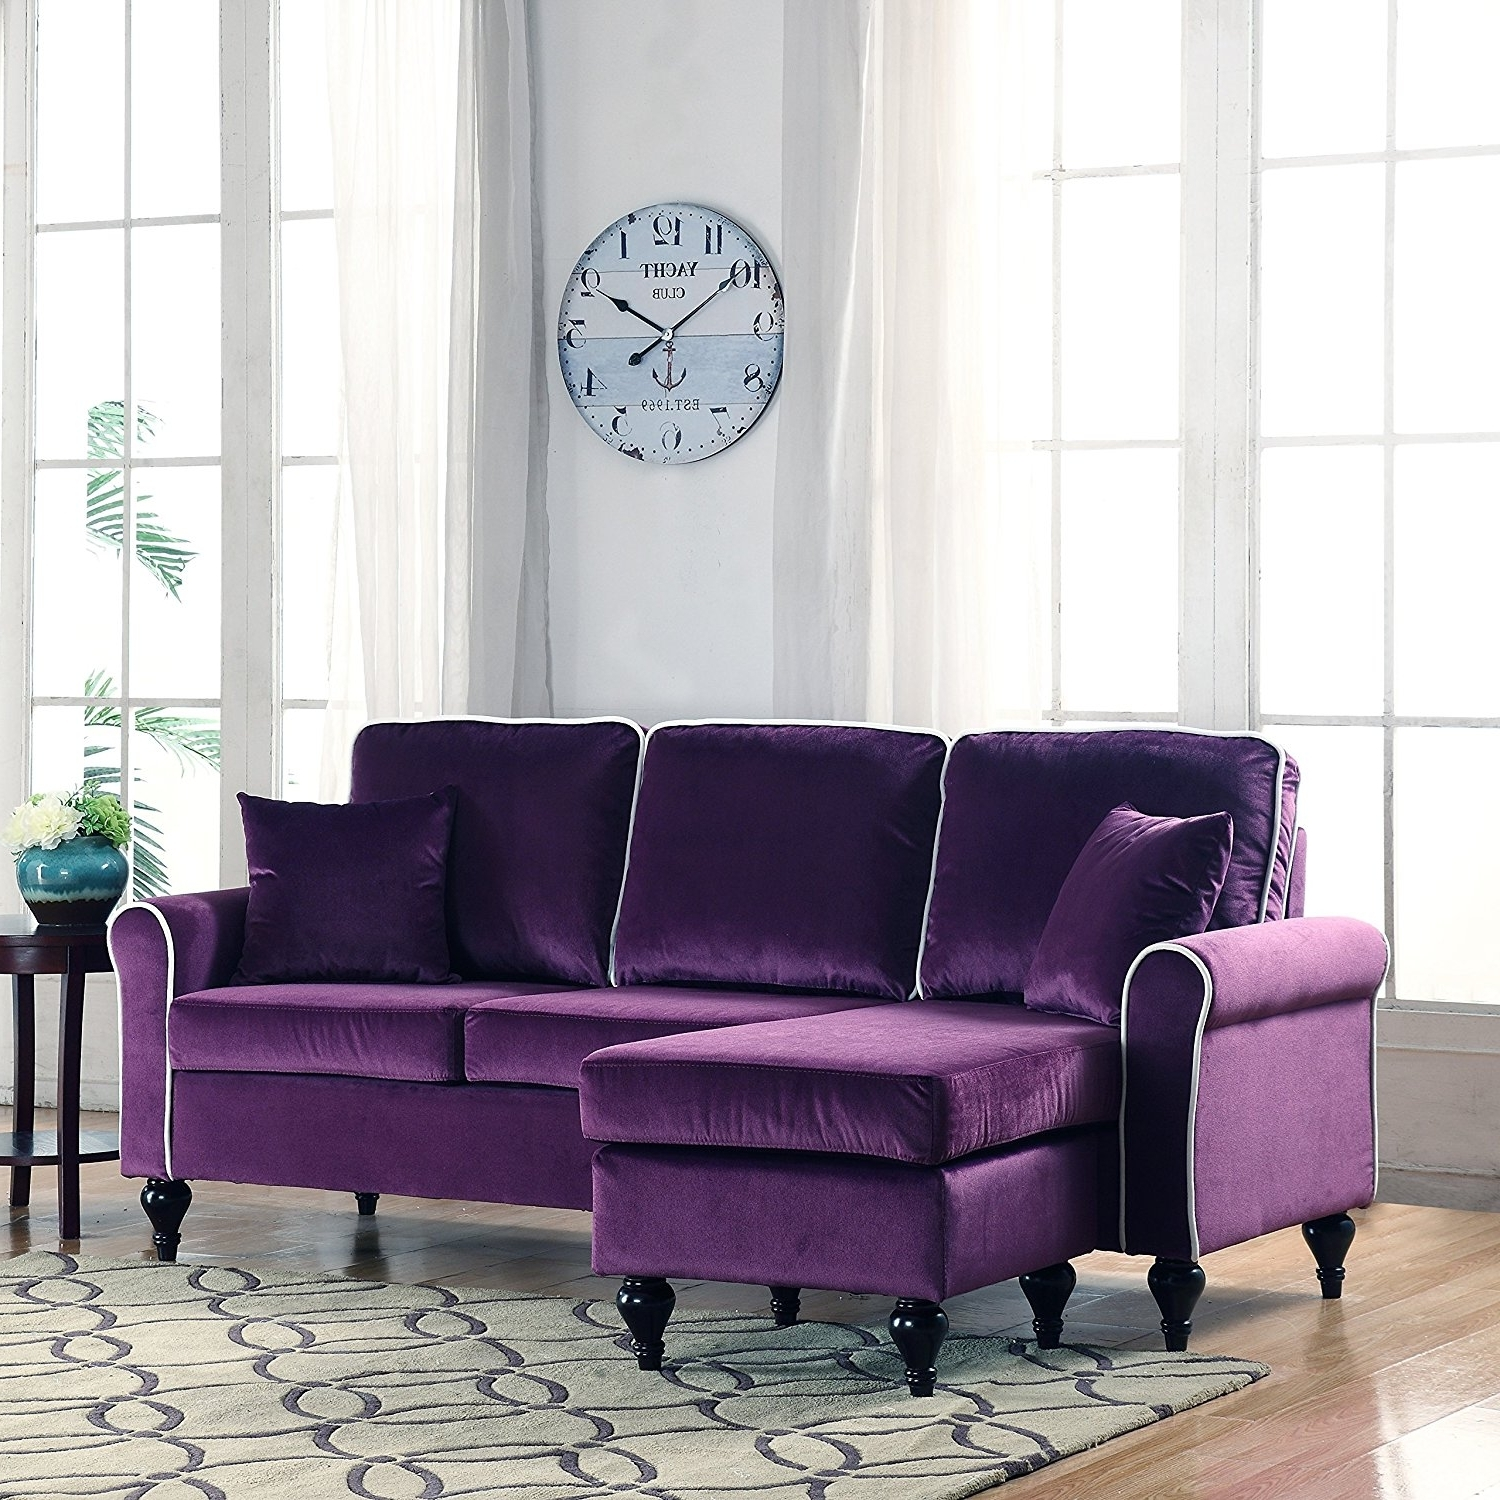 Living Room : Match A Purple Sofa Living Room Decor Purple Velvet Intended For 2019 Velvet Purple Sofas (View 14 of 20)